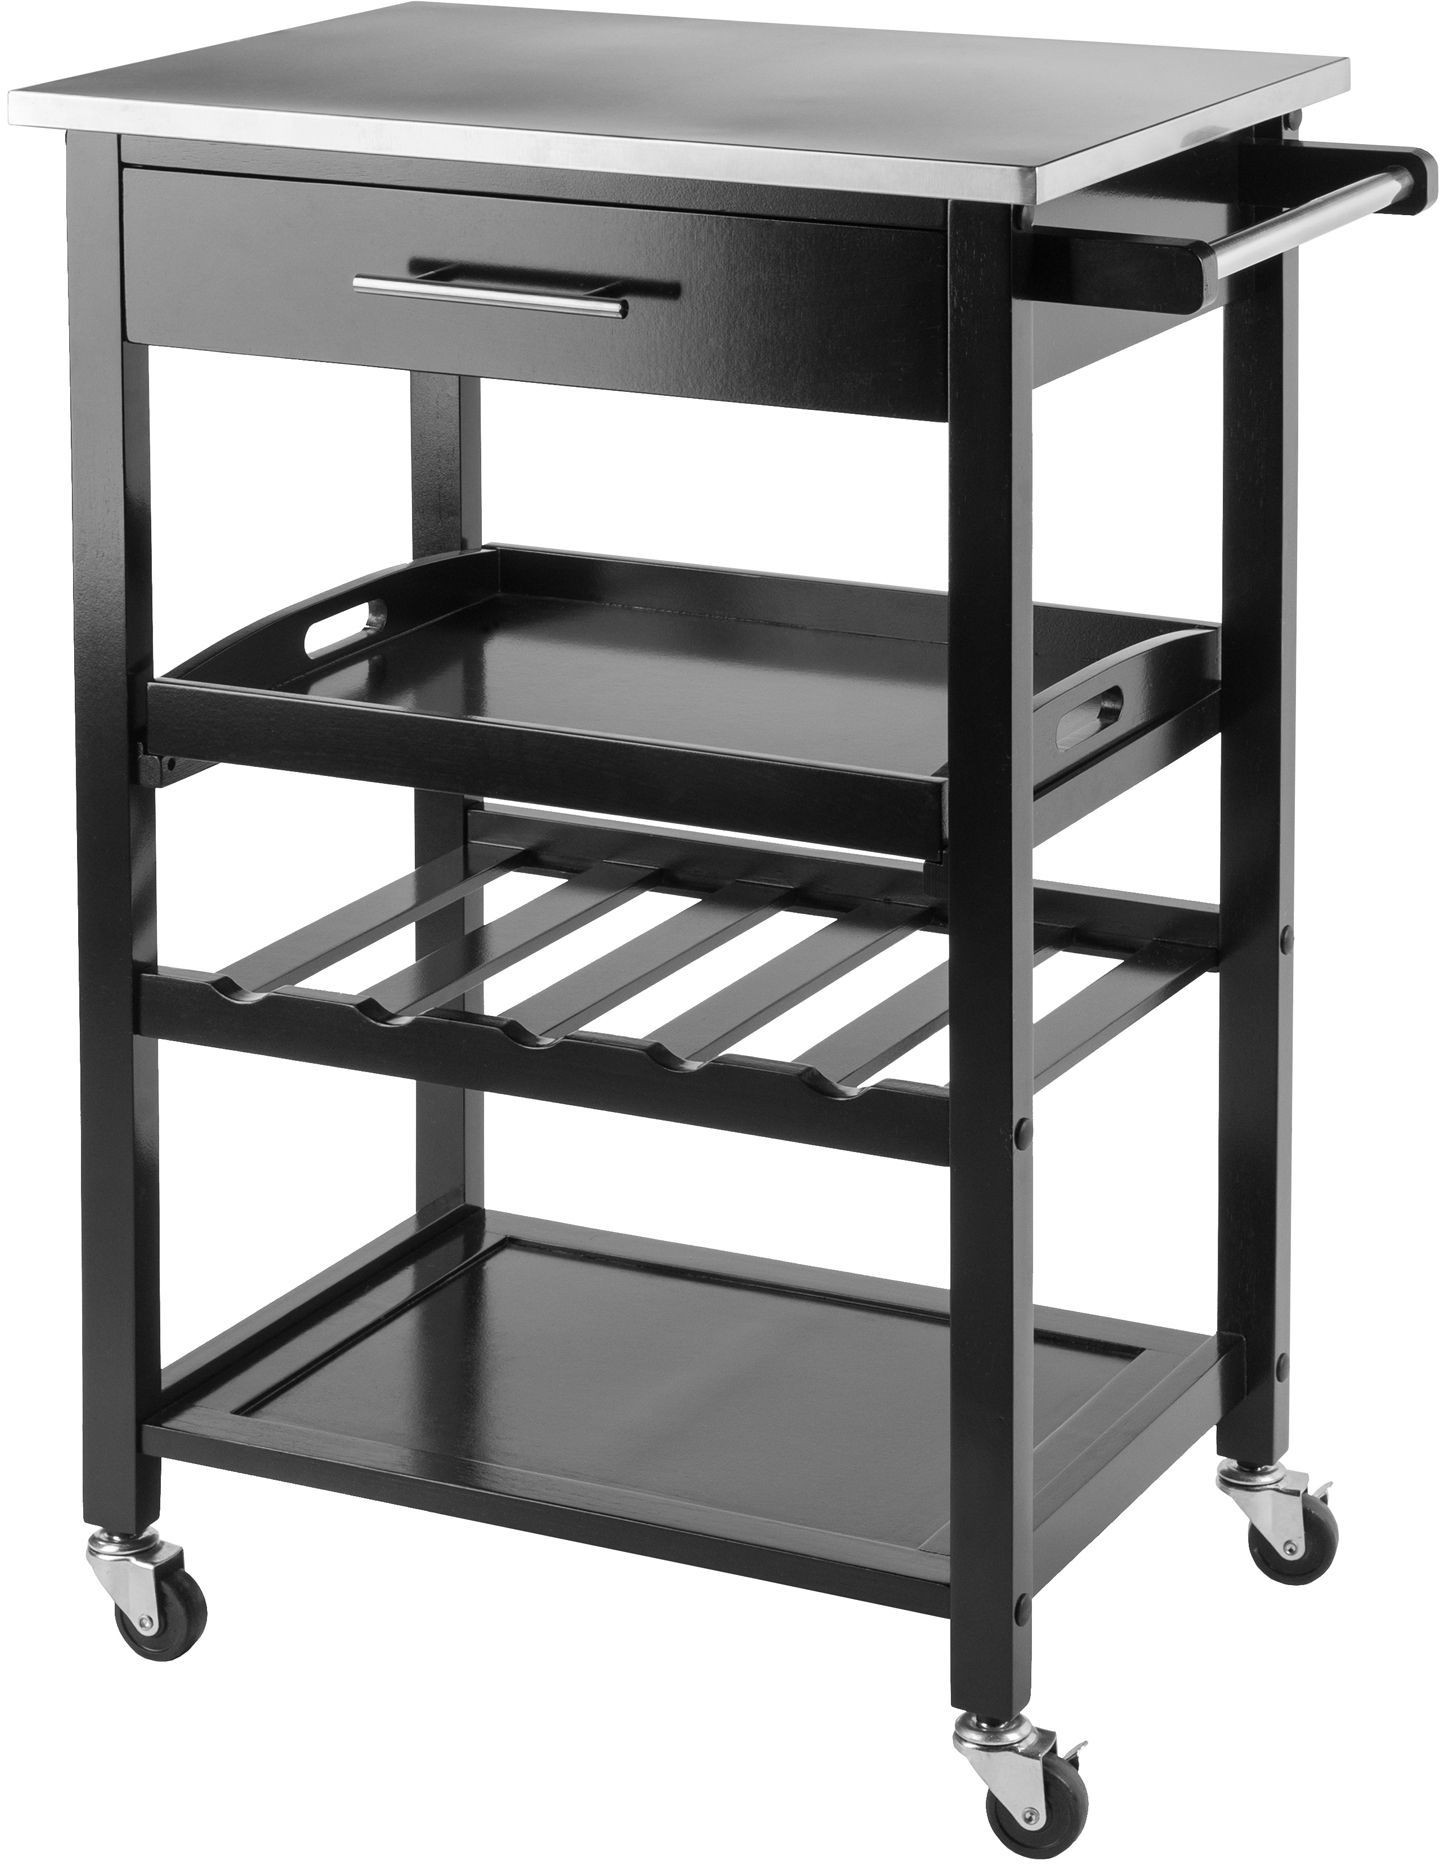 stainless steel kitchen cart colorful accessories anthony black from